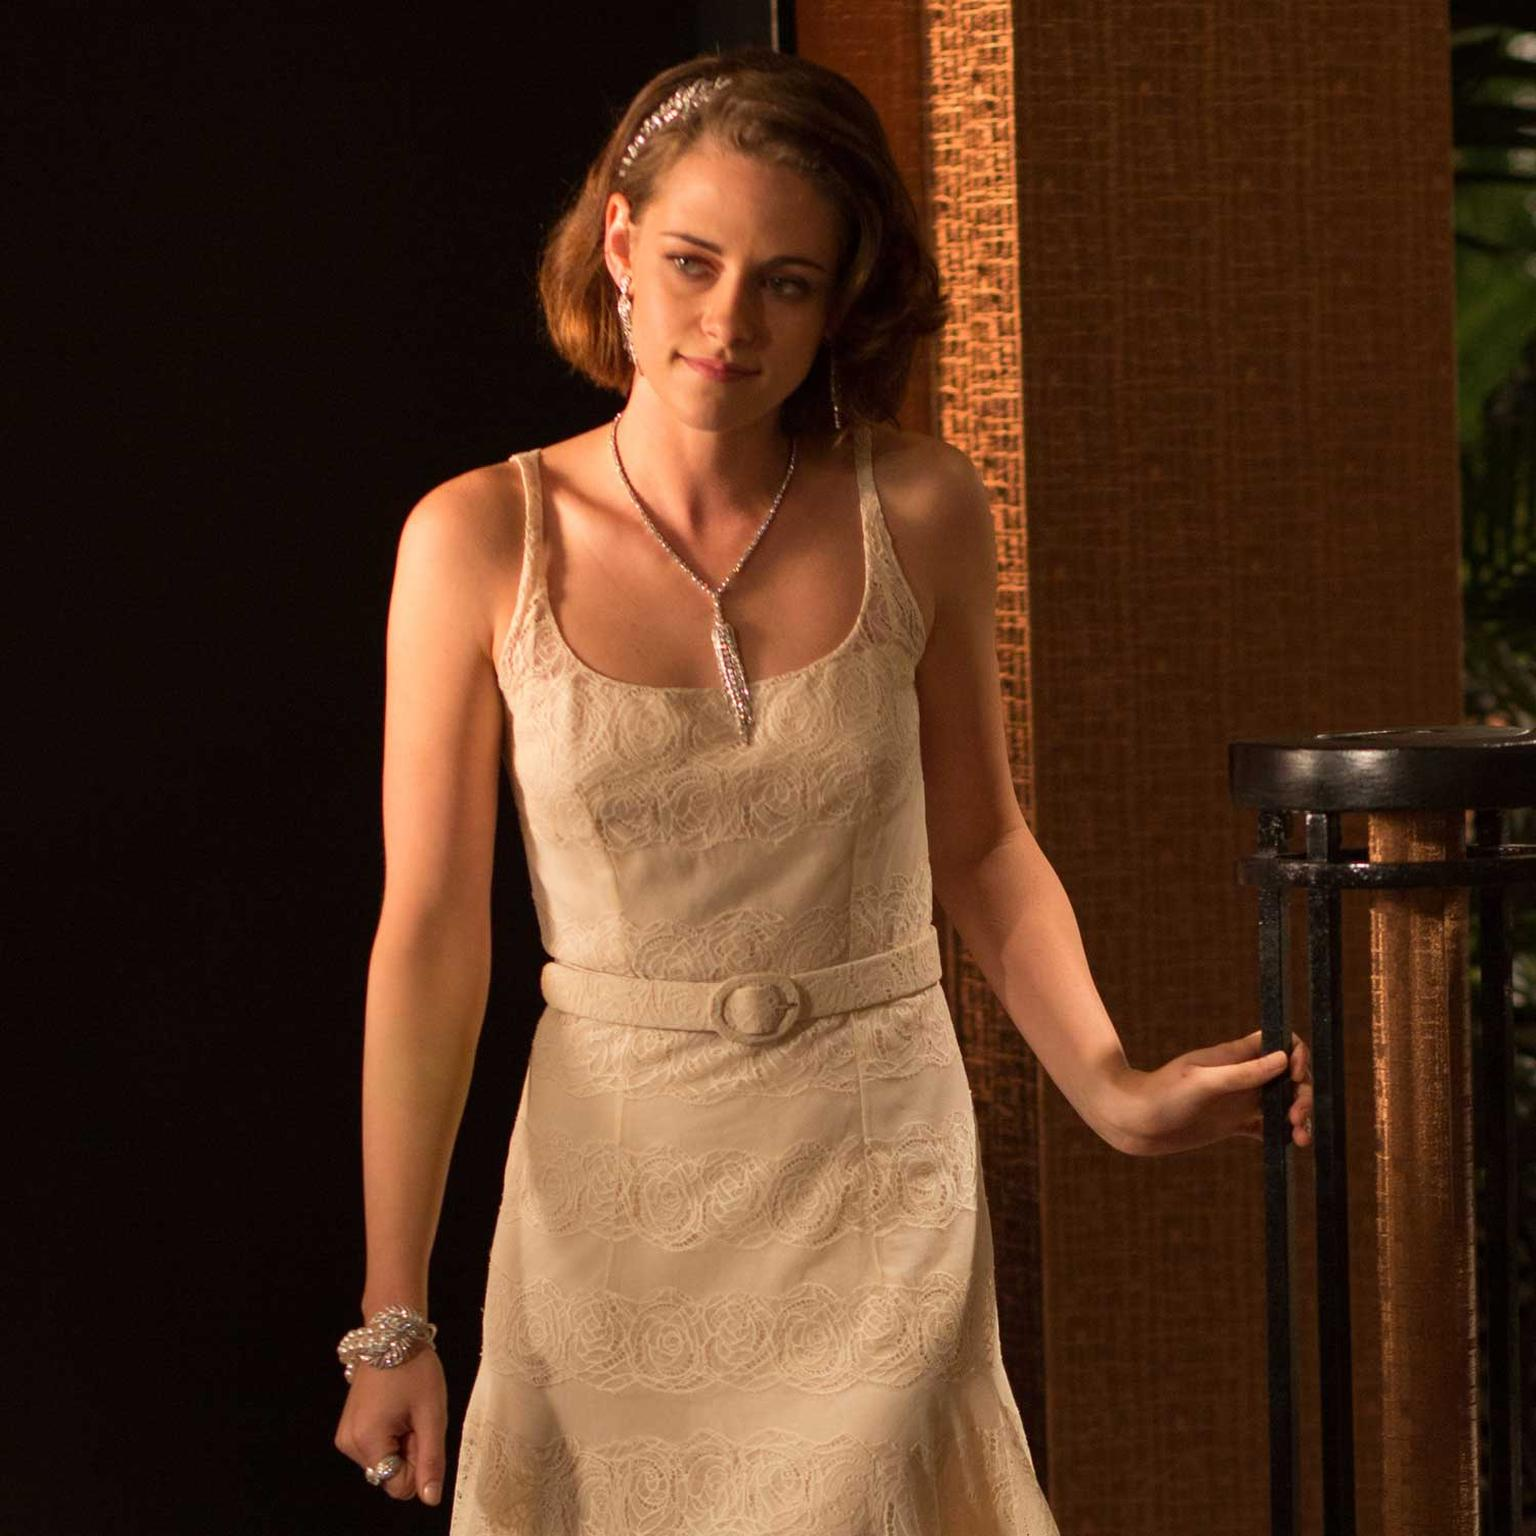 Kristen Stewart makes an entrance in Café Society in Chanel diamond jewellery